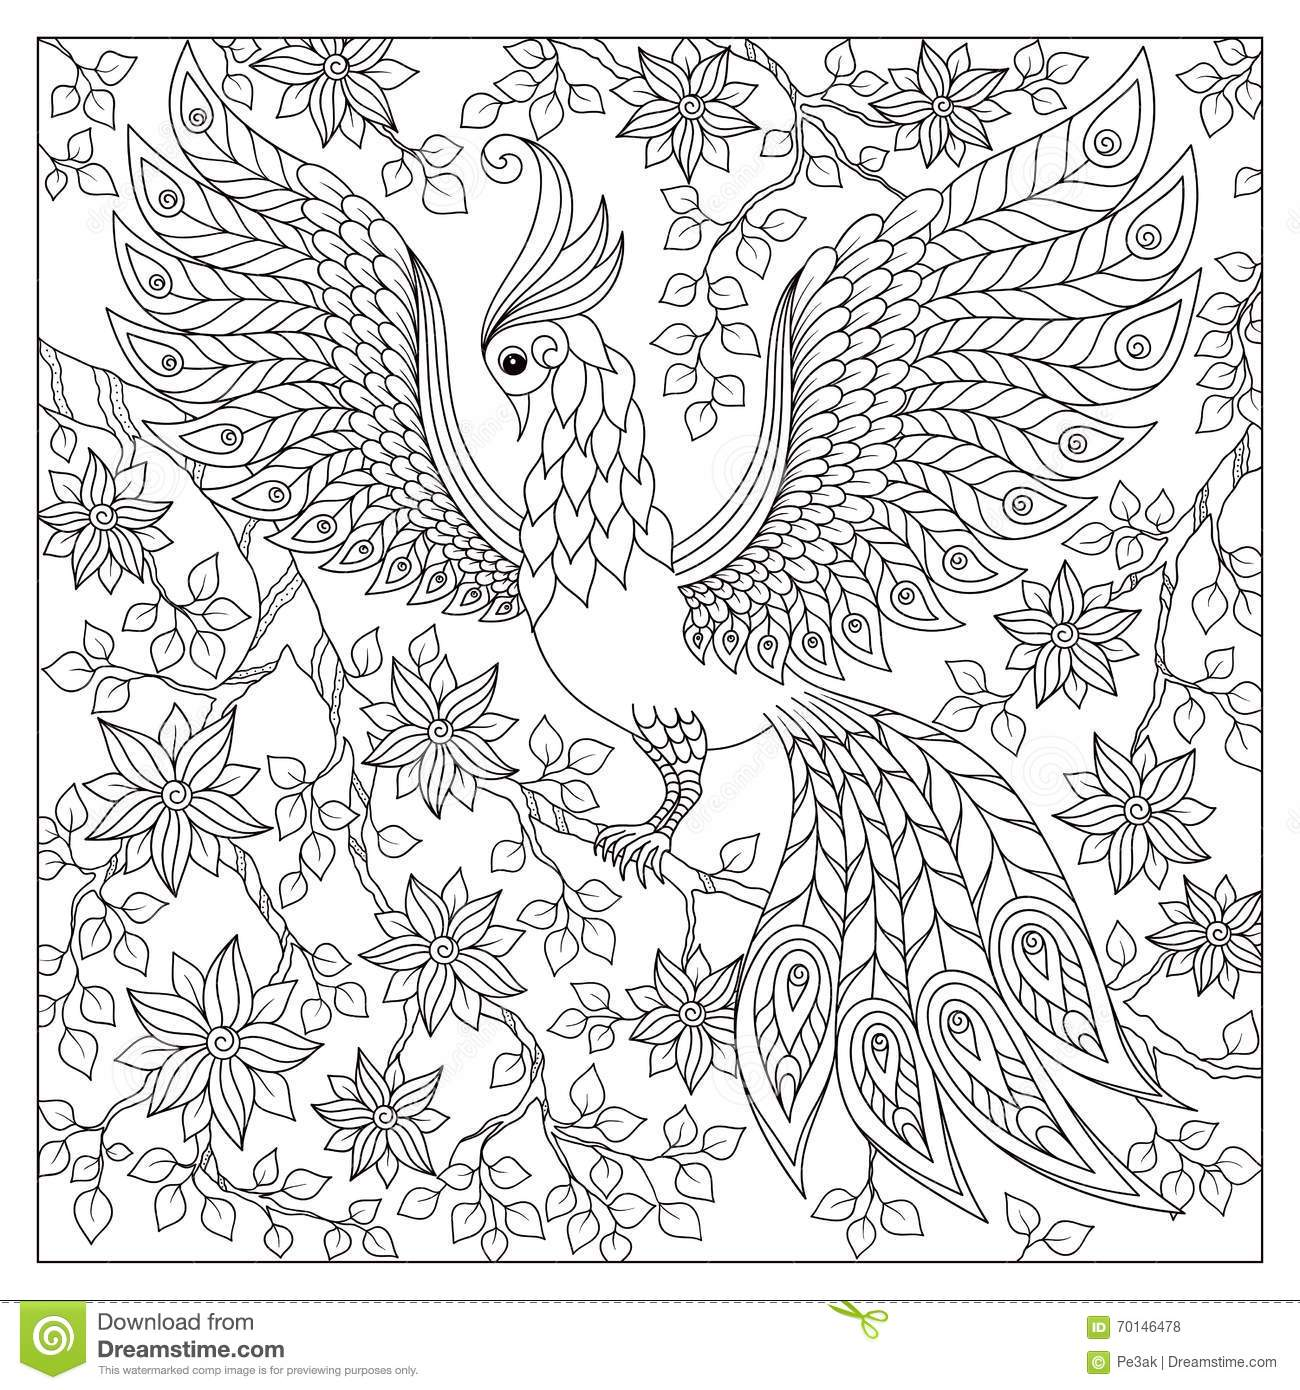 Peacock Adult Antistress Coloring Page Black And White Hand Drawn Doodle For Coloring Book